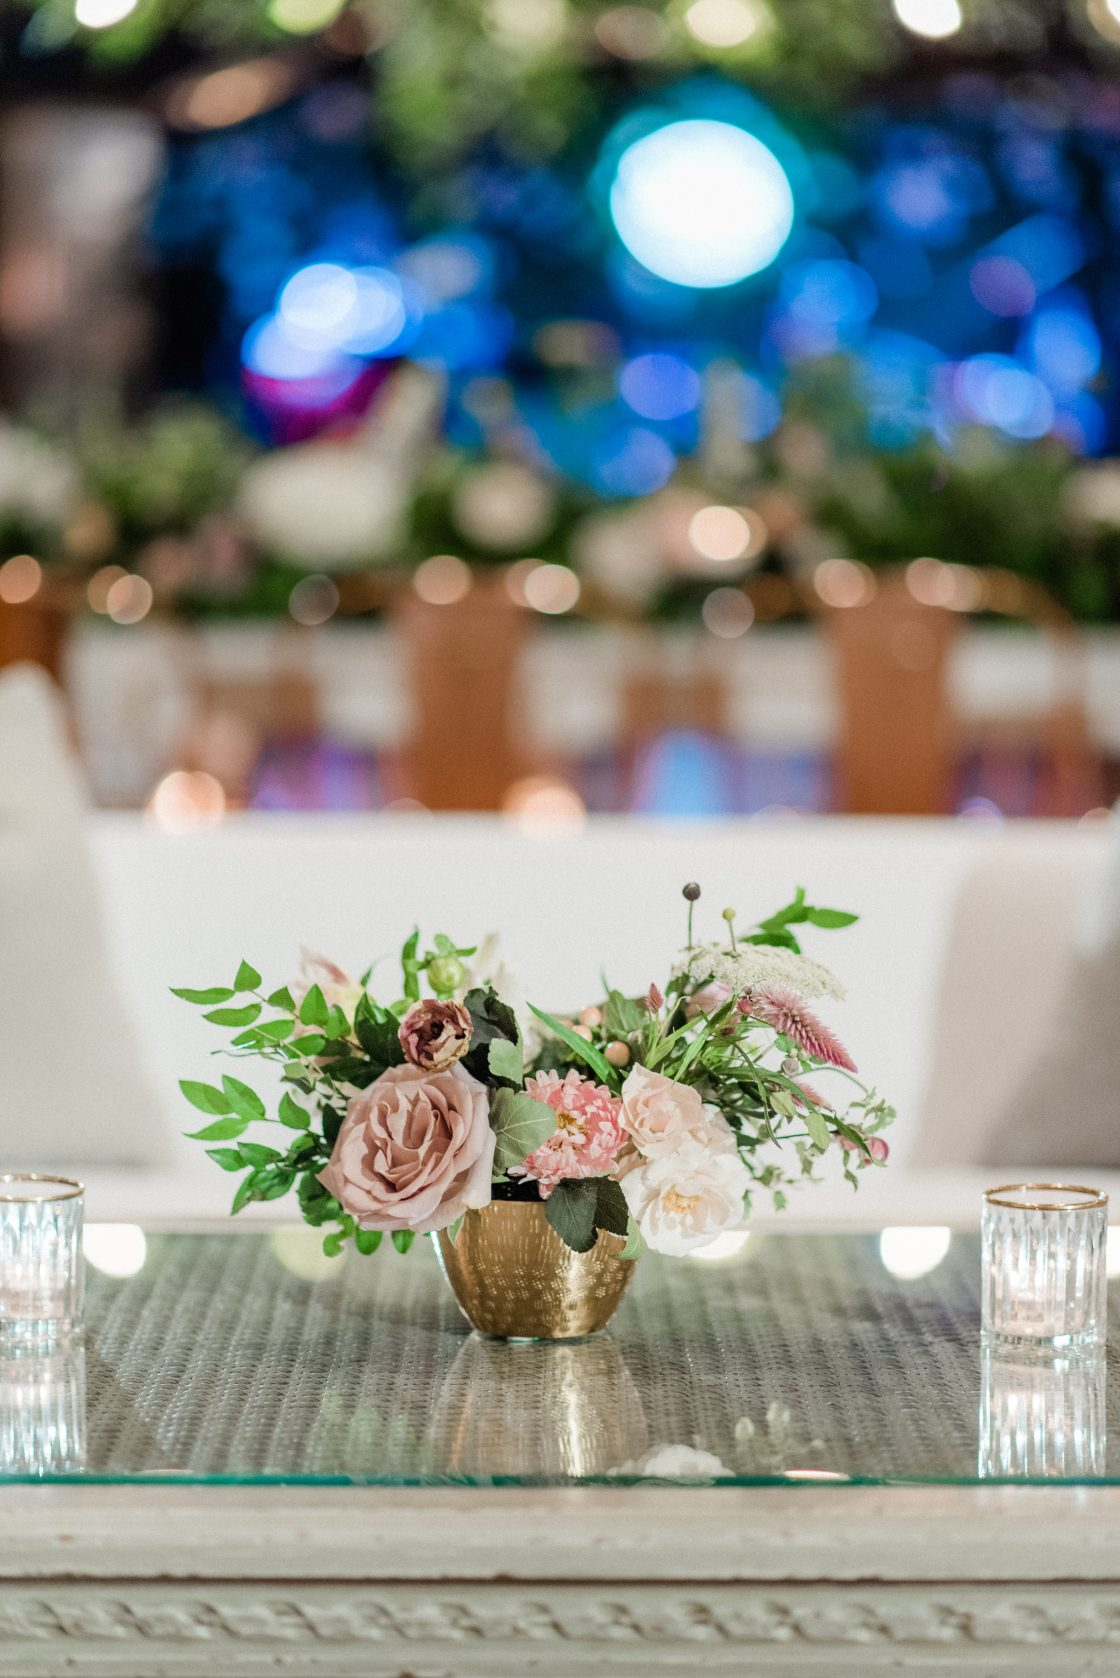 Small Dusty Rose Wedding Centerpiece